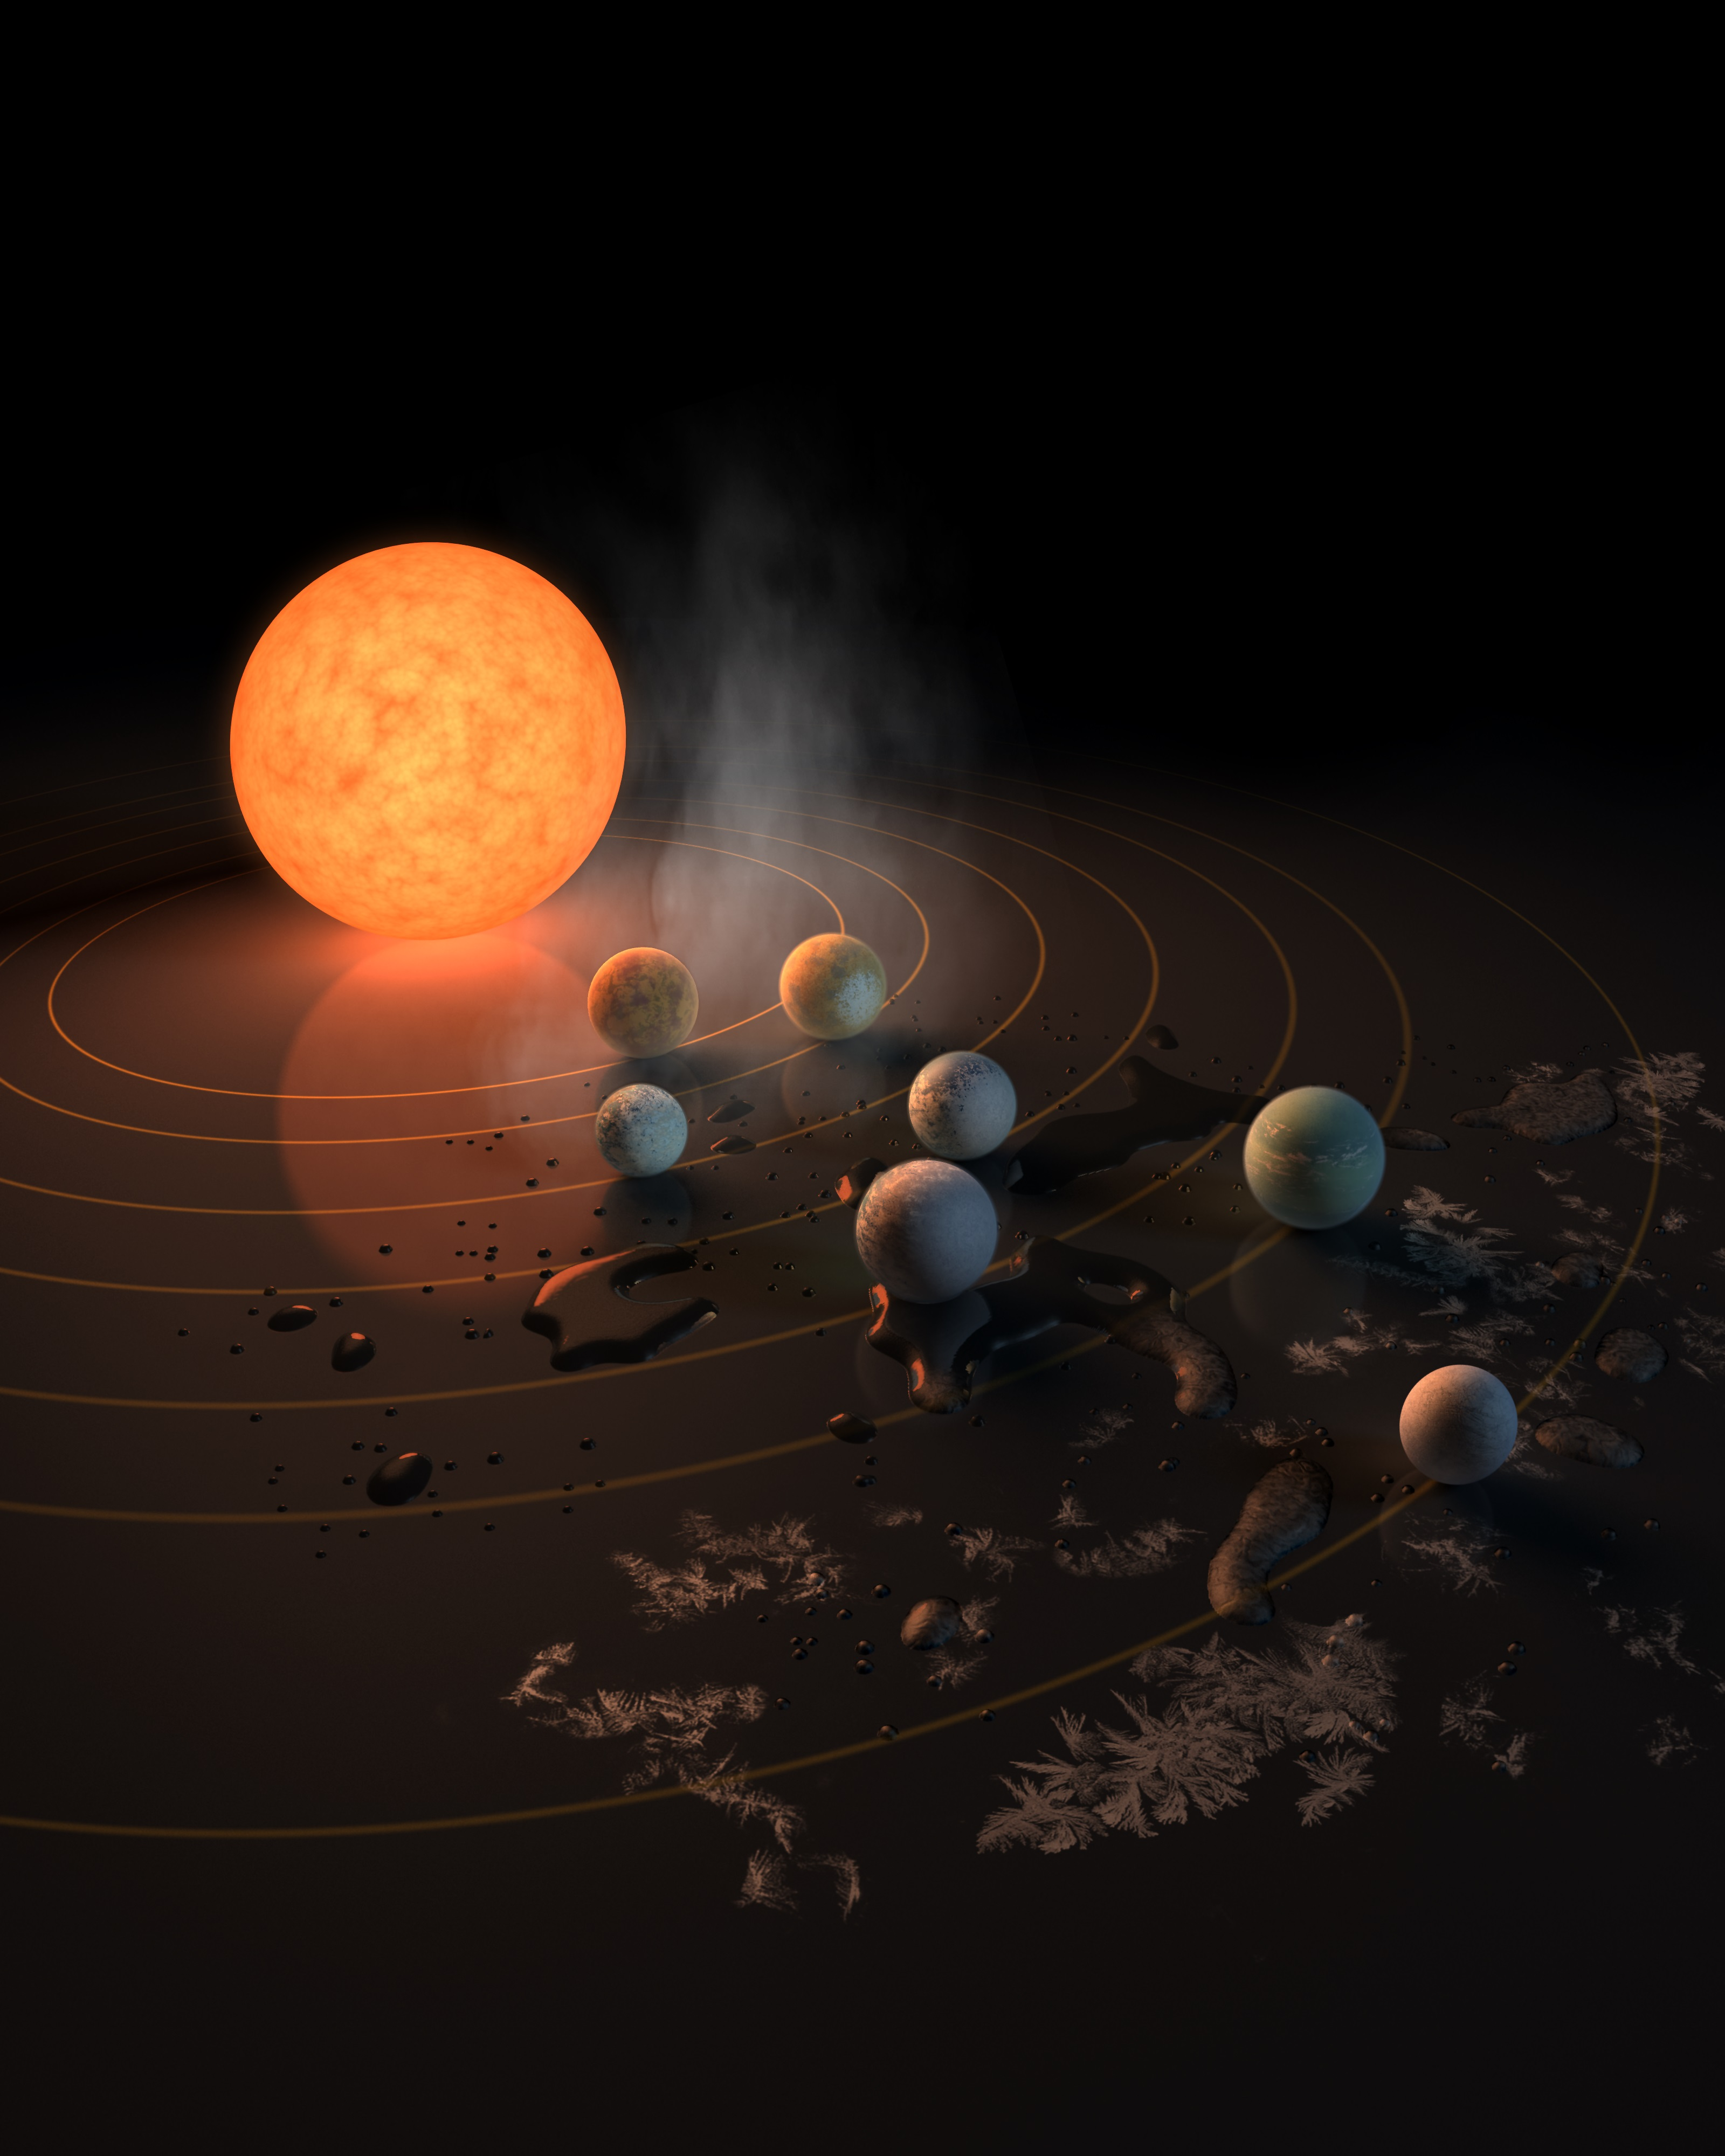 The 7 Earth-Sized Planets of TRAPPIST-1 in Pictures